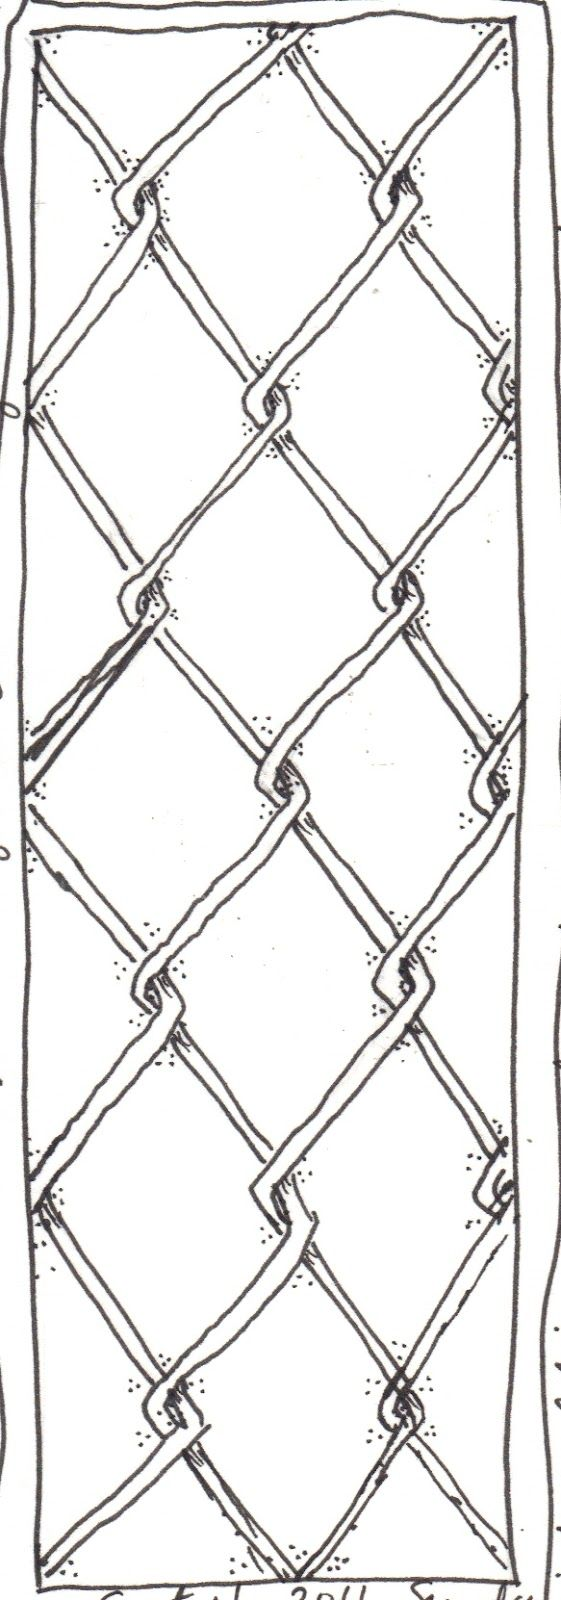 It's harder than I thought to draw that chain link fence